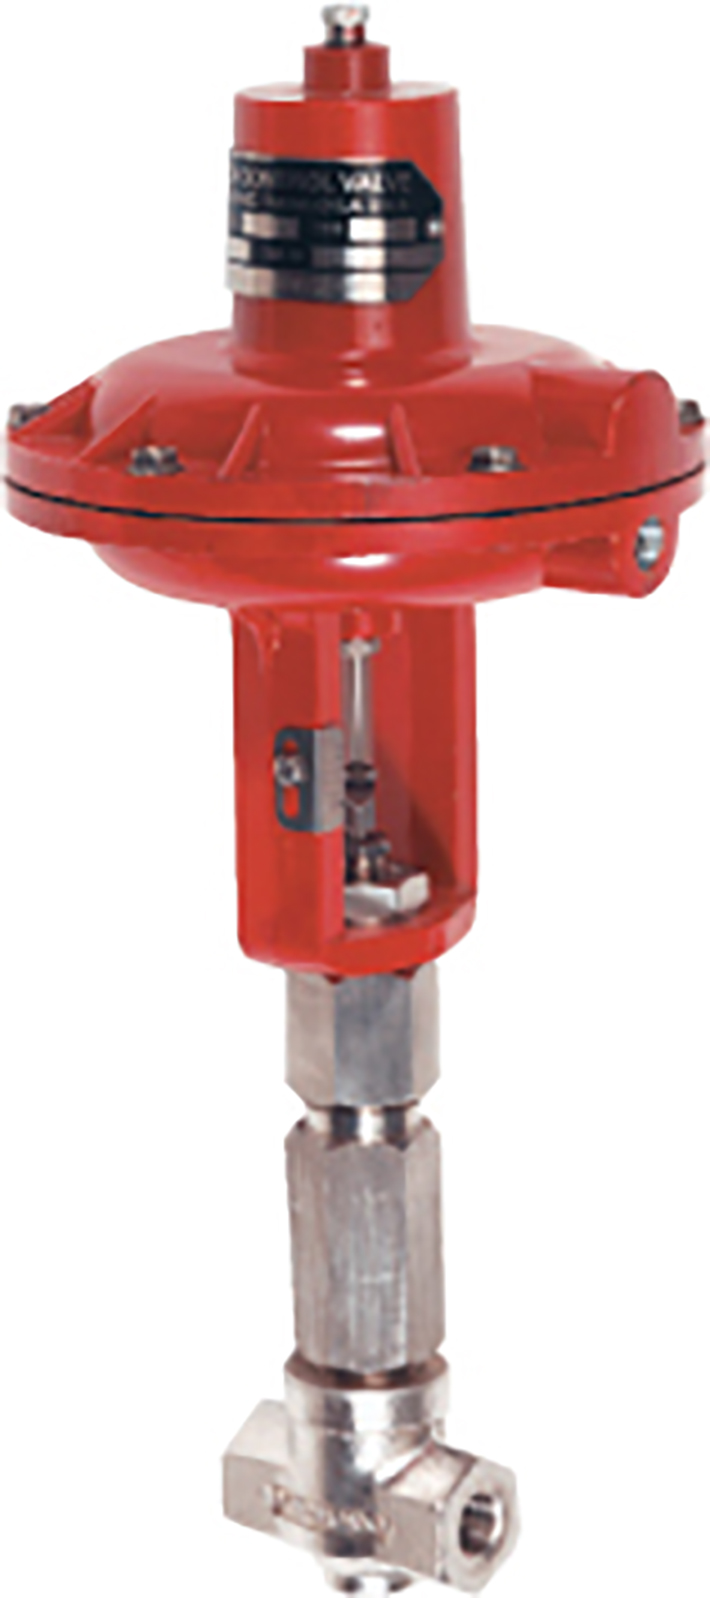 Type 808 Bellows Sealed Globe Control Valve